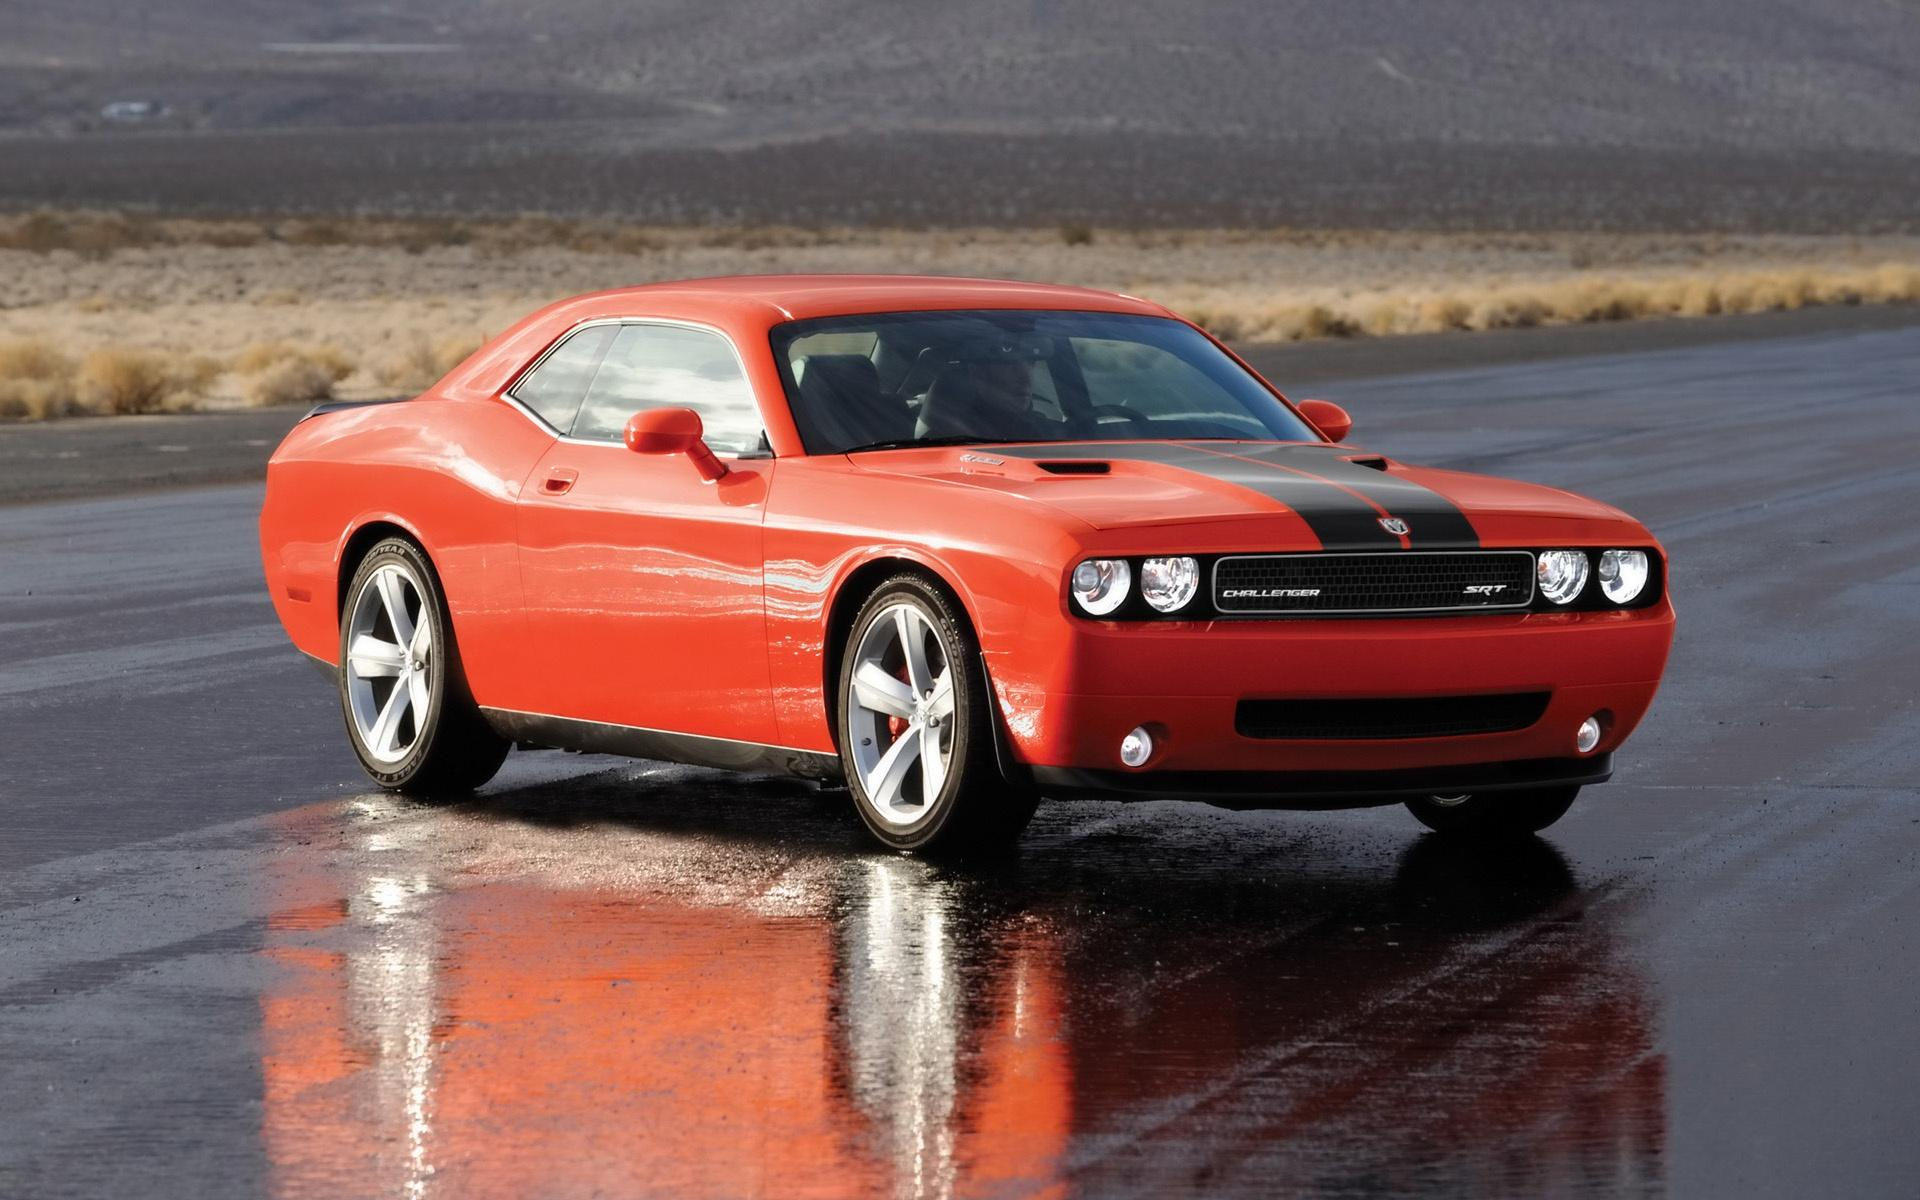 2008 Dodge Challenger Srt8 Side Angle Wet Pavement 1920x1200